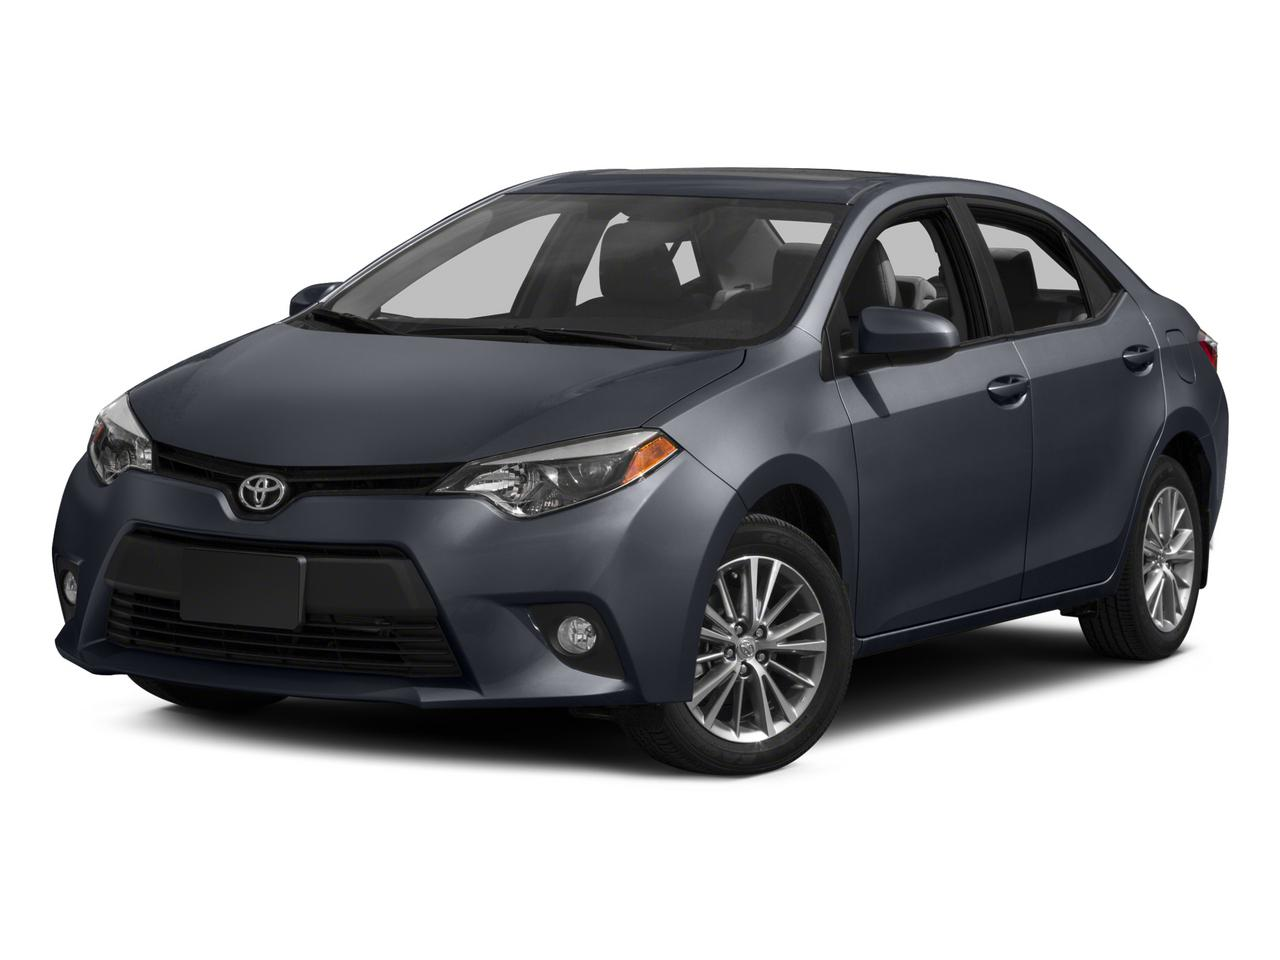 2015 Toyota Corolla Vehicle Photo in Trevose, PA 19053-4984